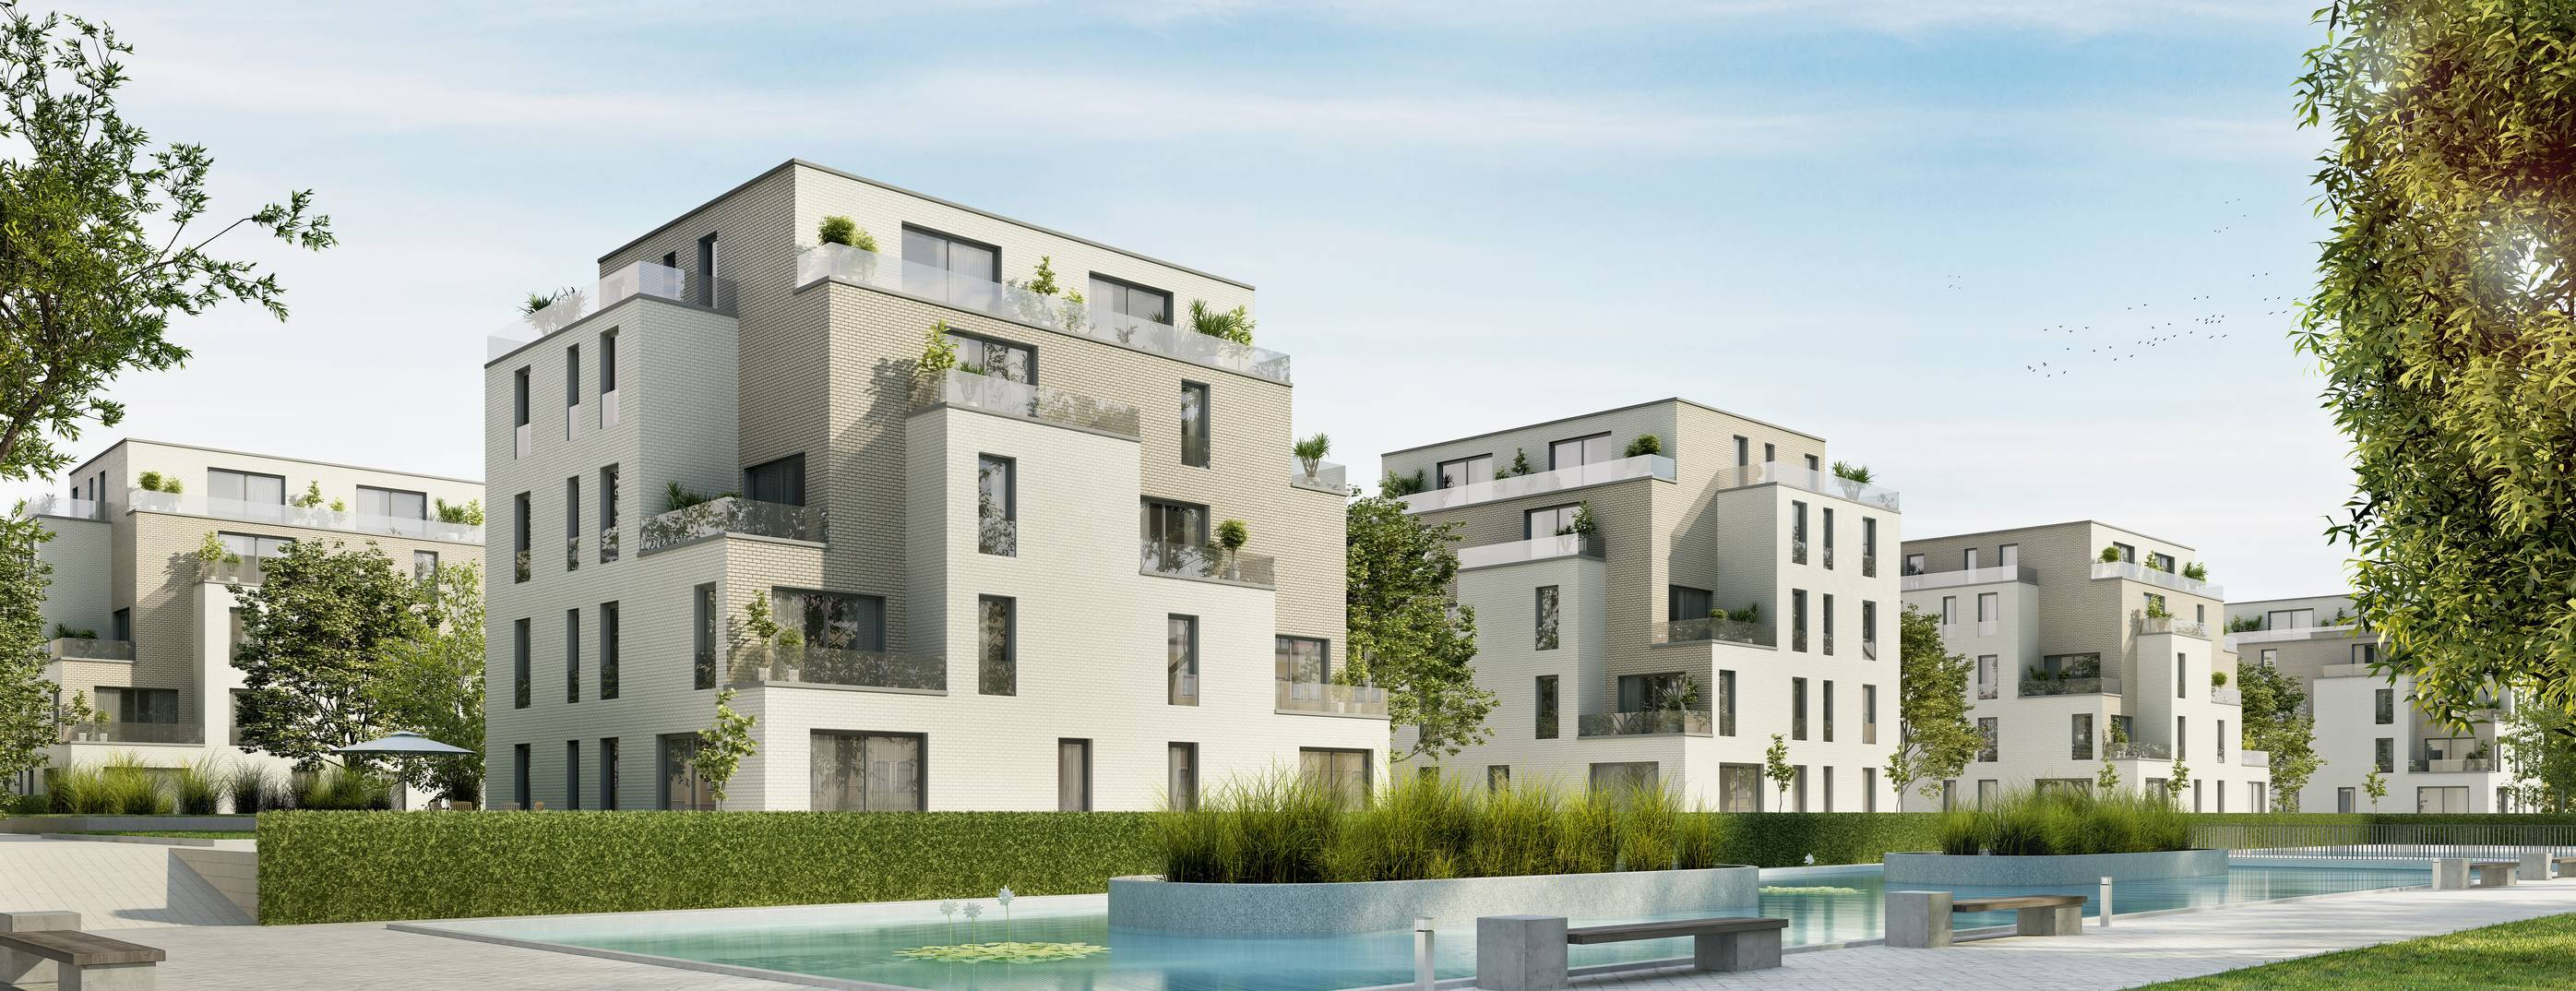 programme immobilier neuf, Montpellier